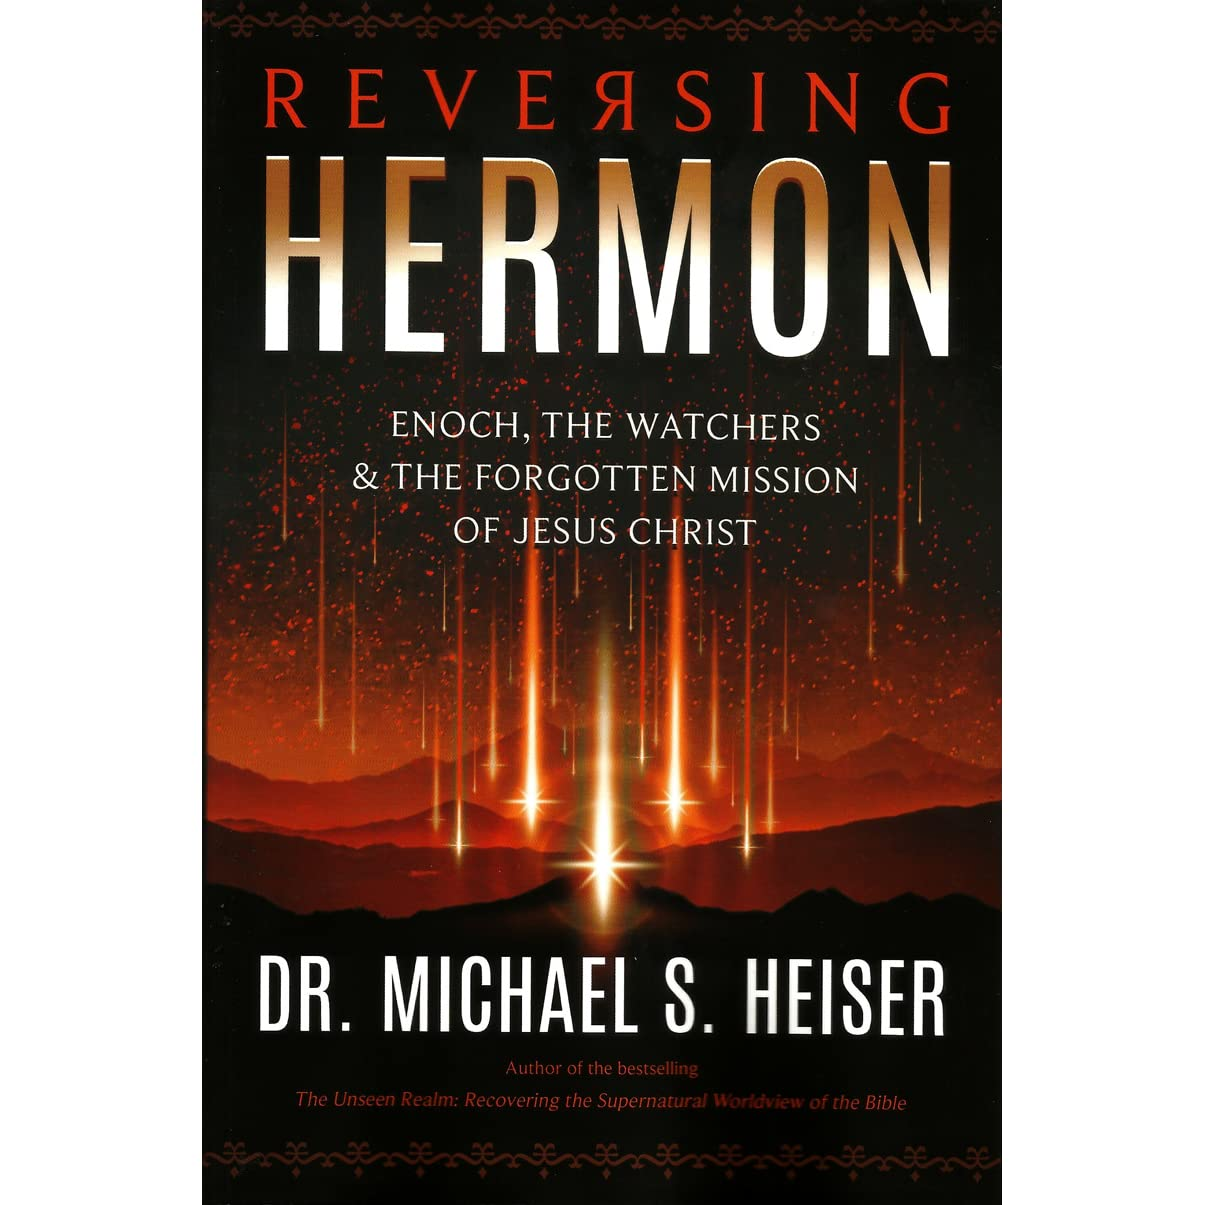 Reversing Hermon: Enoch, the Watchers, and the Forgotten Mission of